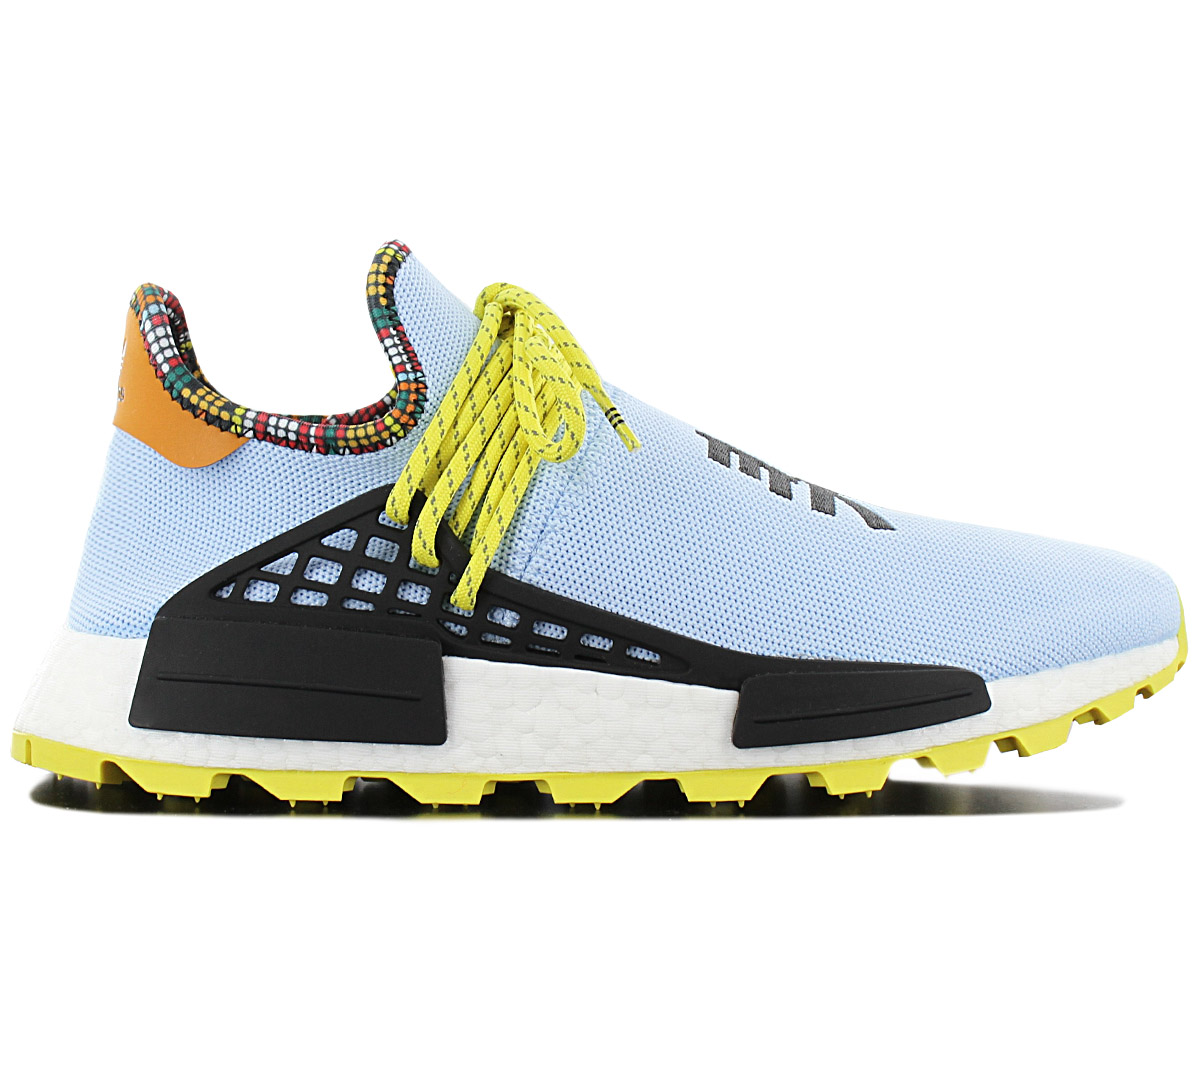 48312c903 Adidas Pharrell Williams Solar Hu Human Race Nmd Pw Ee7581 ...